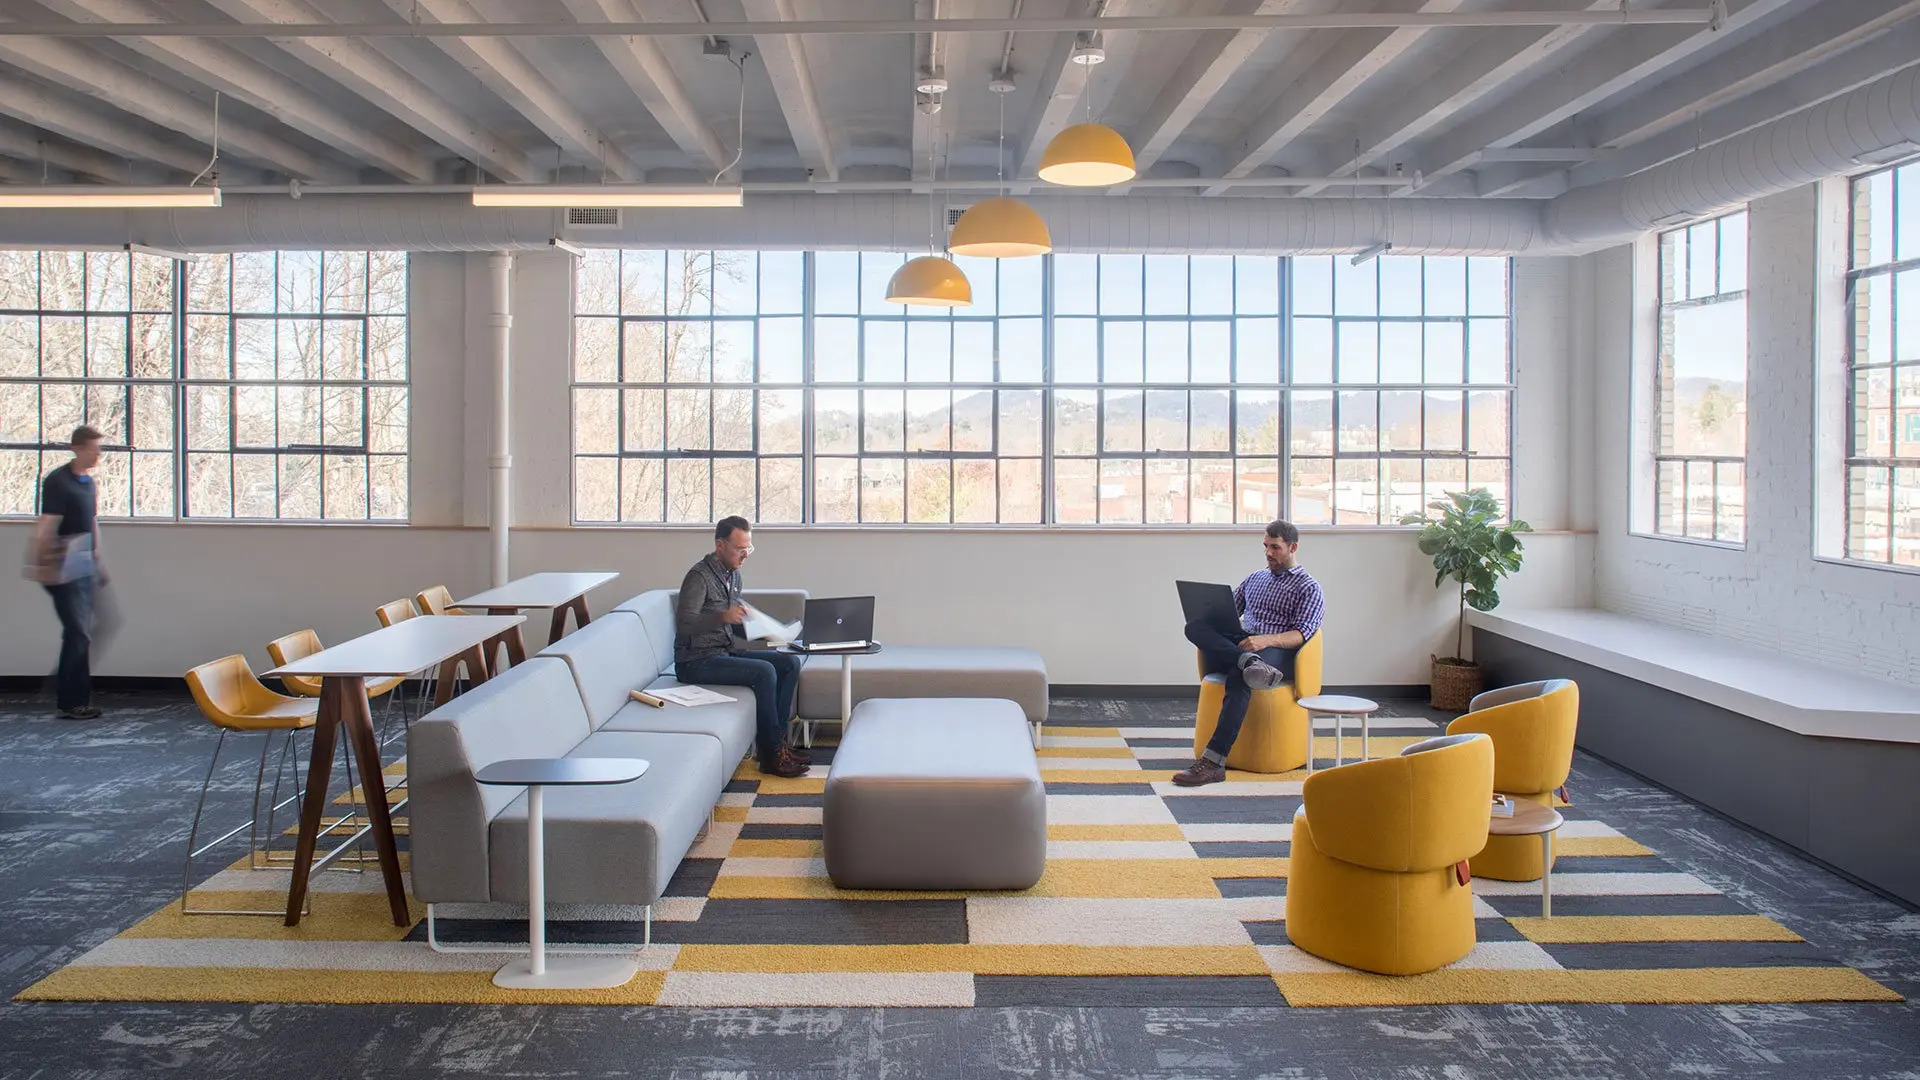 Return to the Workplace: Re-Occupancy Design During COVID-19